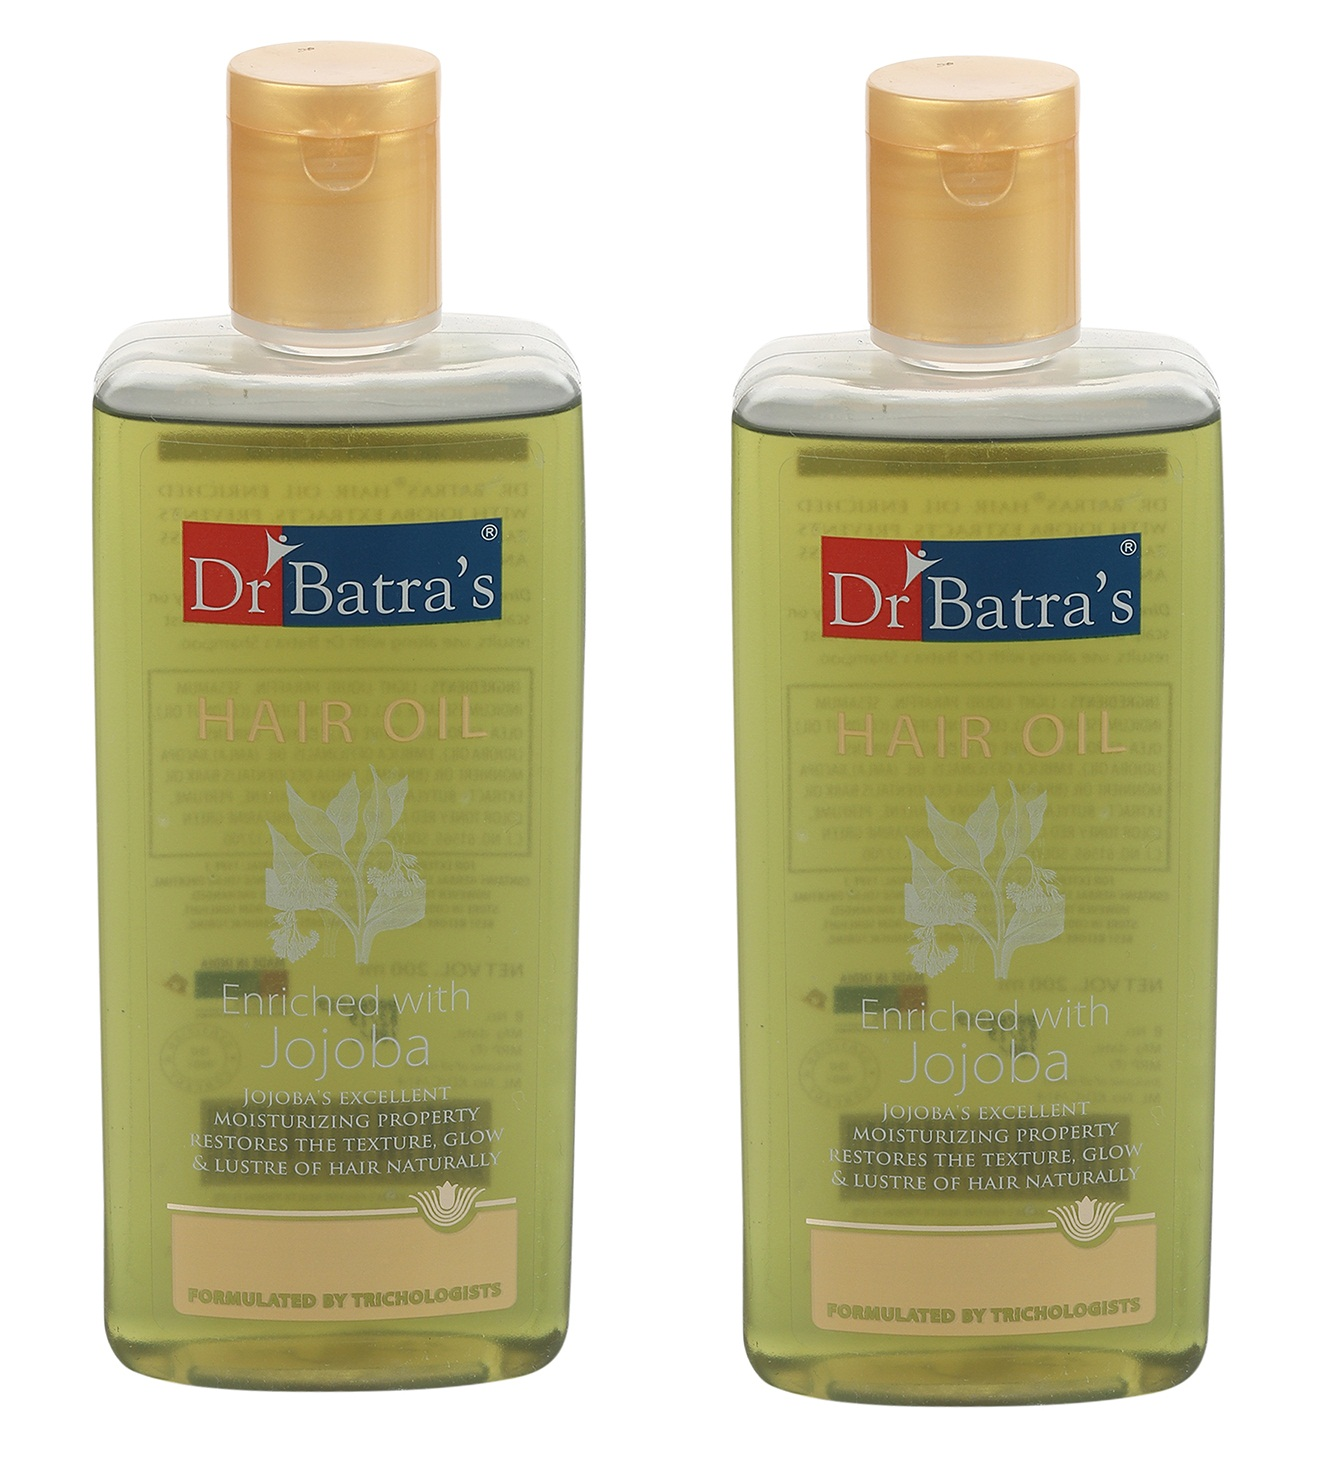 Dr Batra's | Dr Batra's Hair Oil Enriched With Jojoba - 200 ml (Pack of 2)